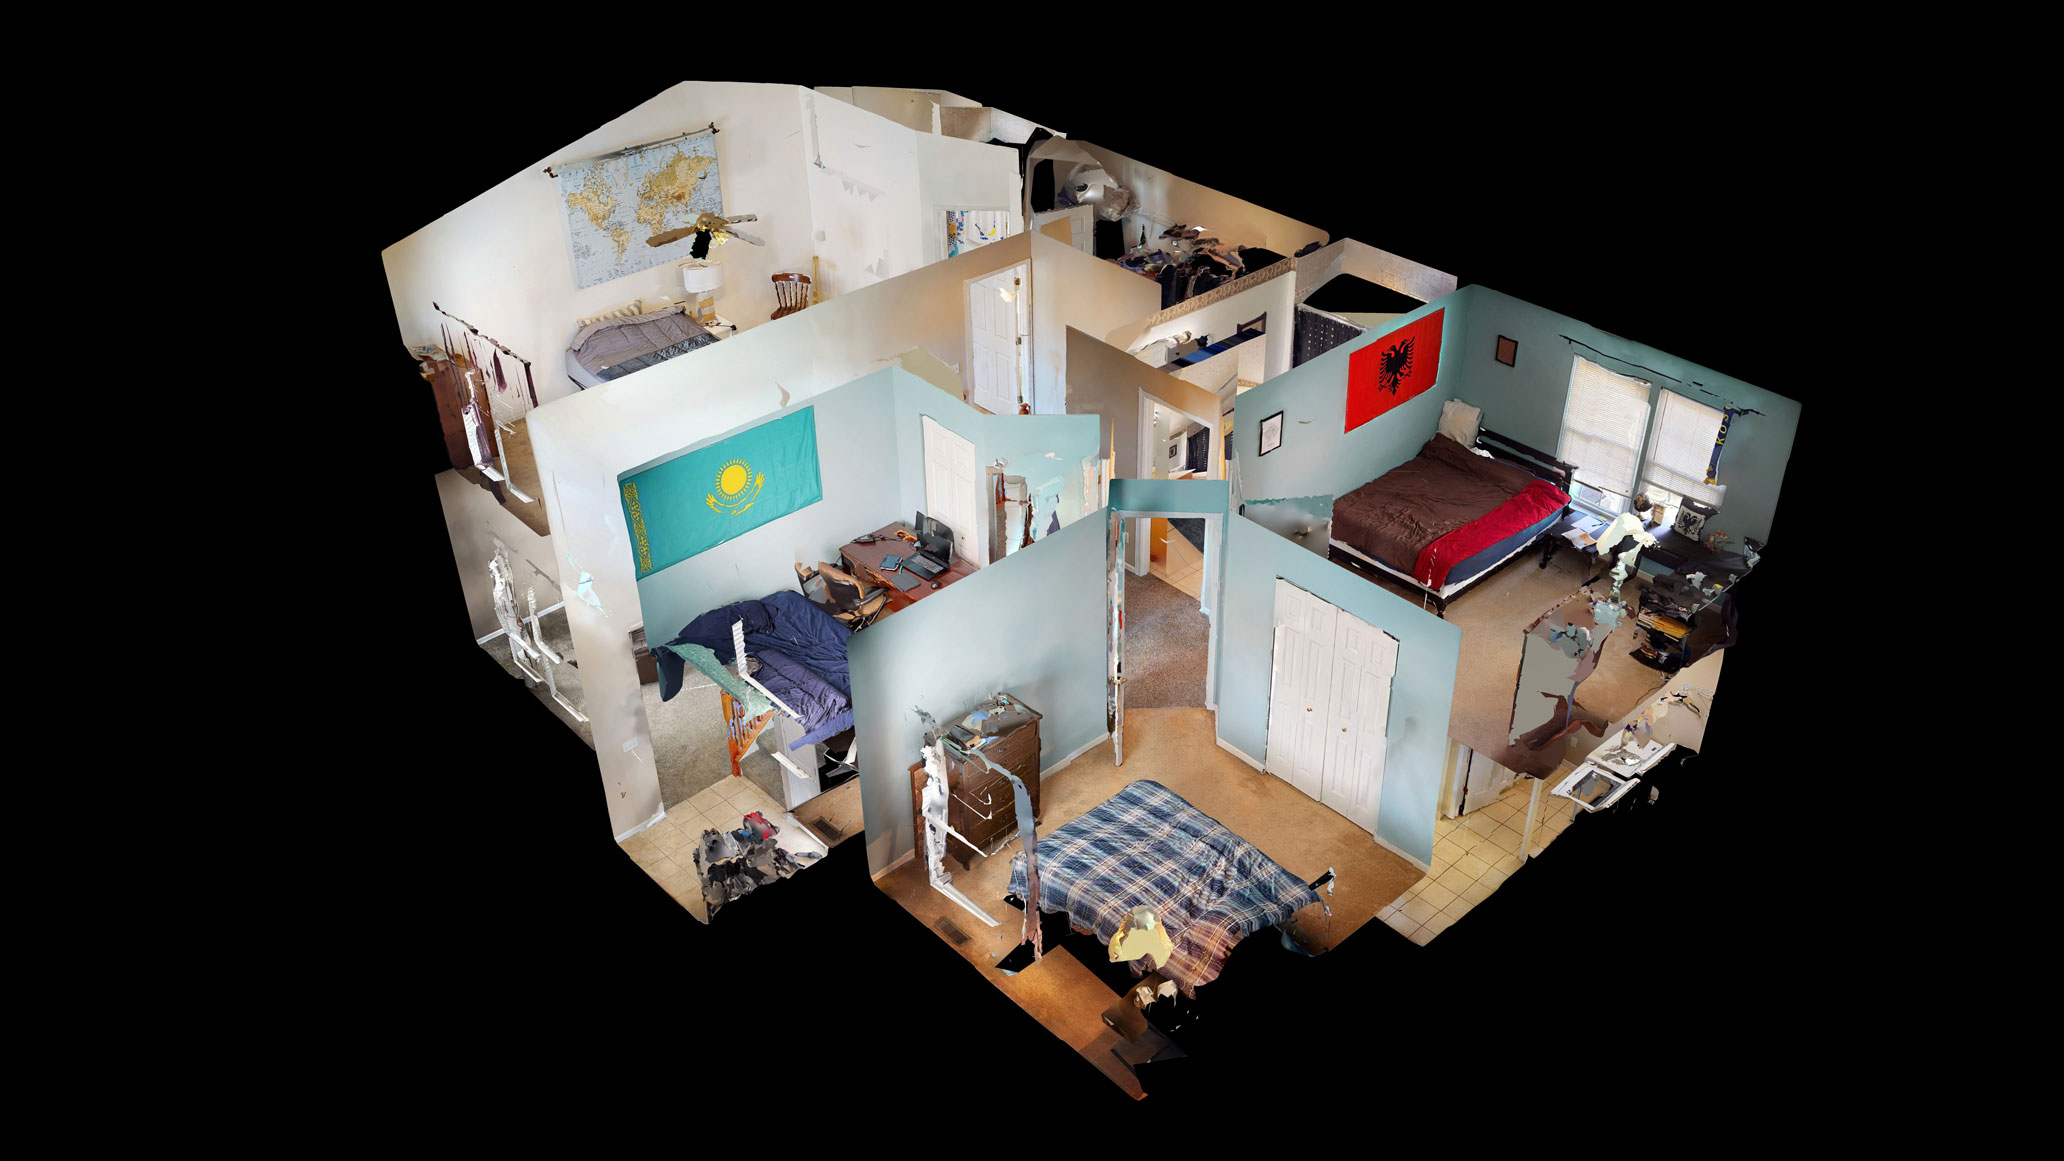 268-Coyote-Dr-Dollhouse-View